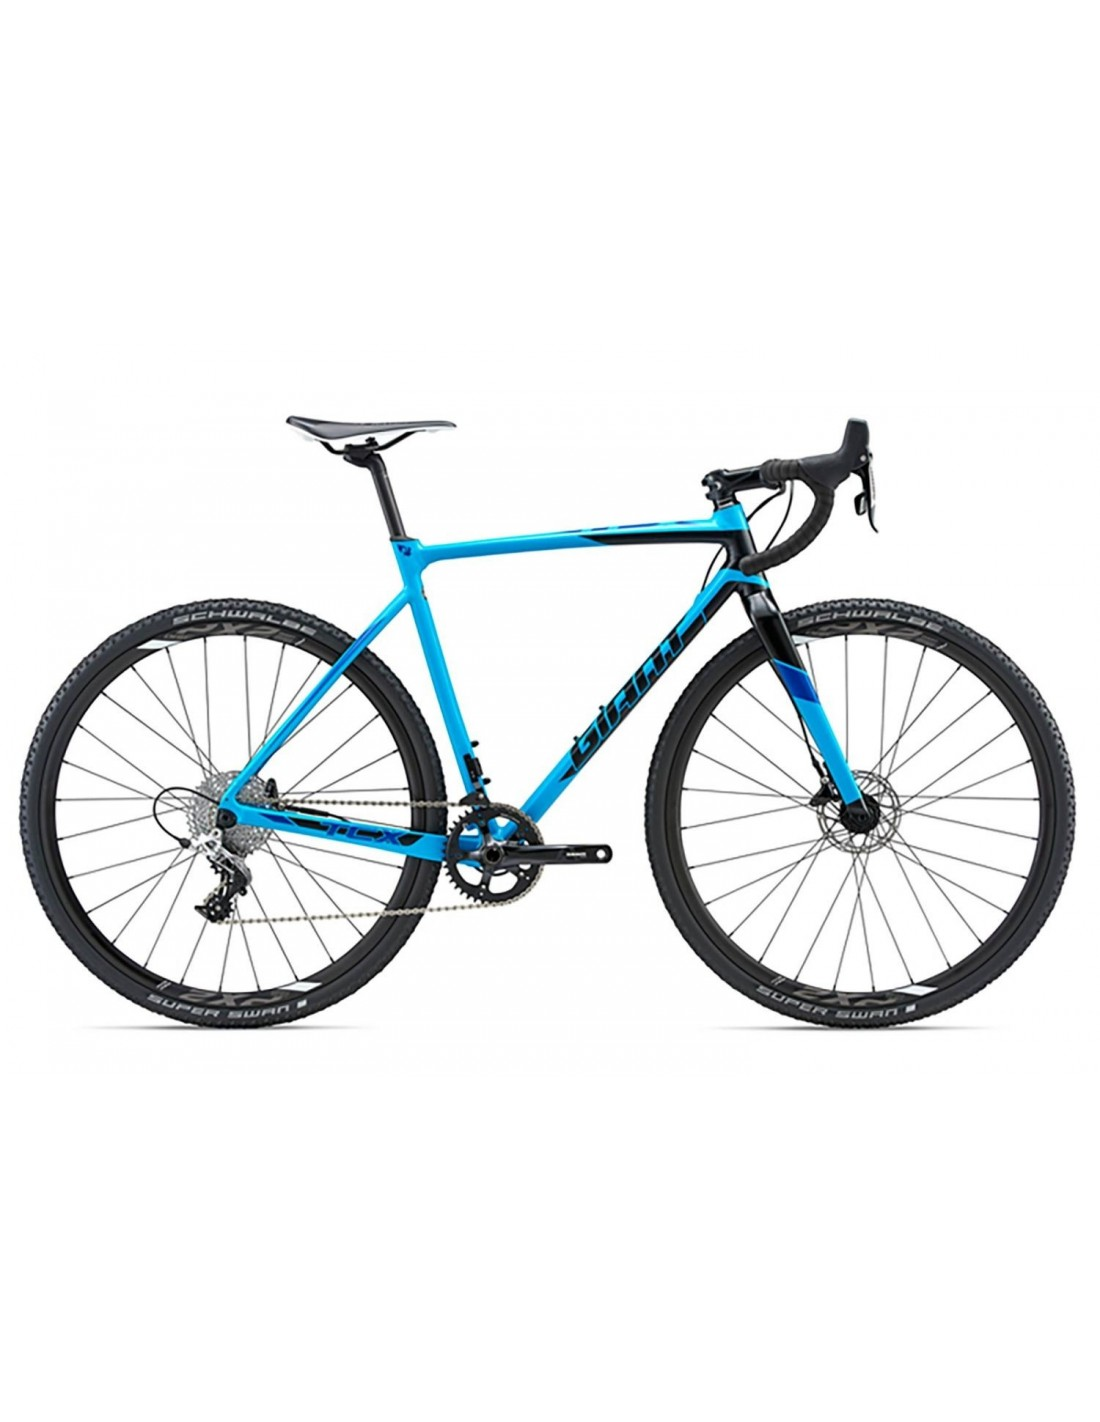 Tcx Slr 1 Bici Ciclocross Giant 2018